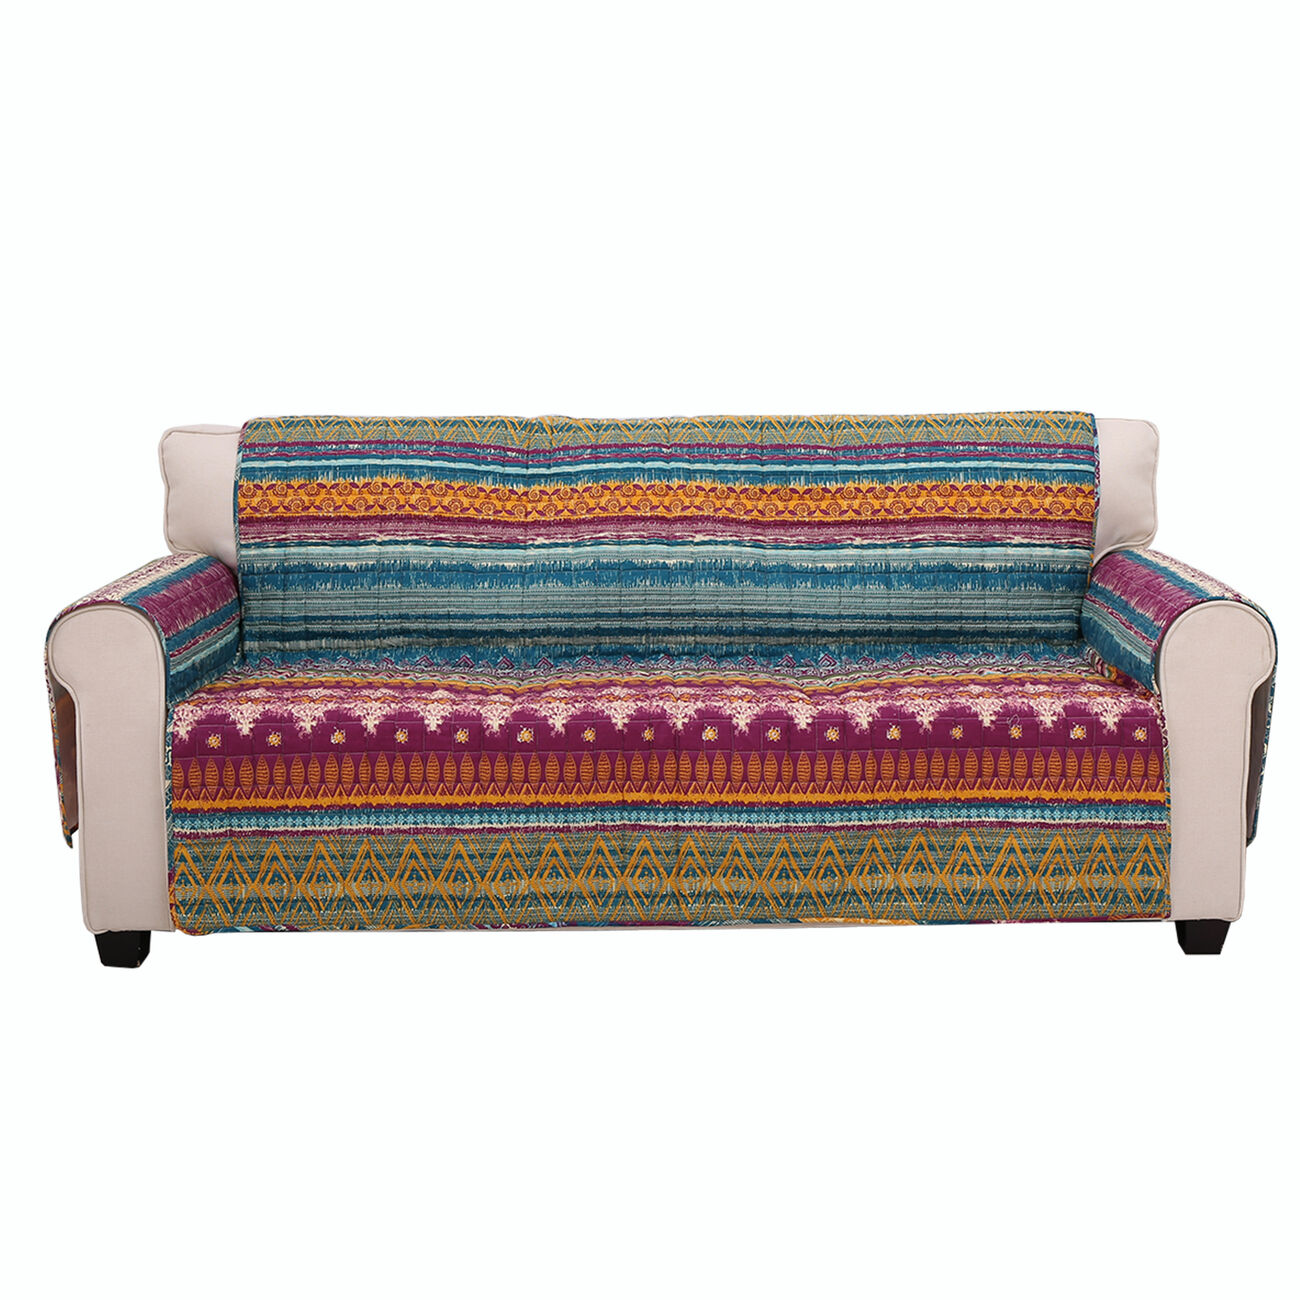 Polyester Sofa Protector with Tribal Print, Multicolor